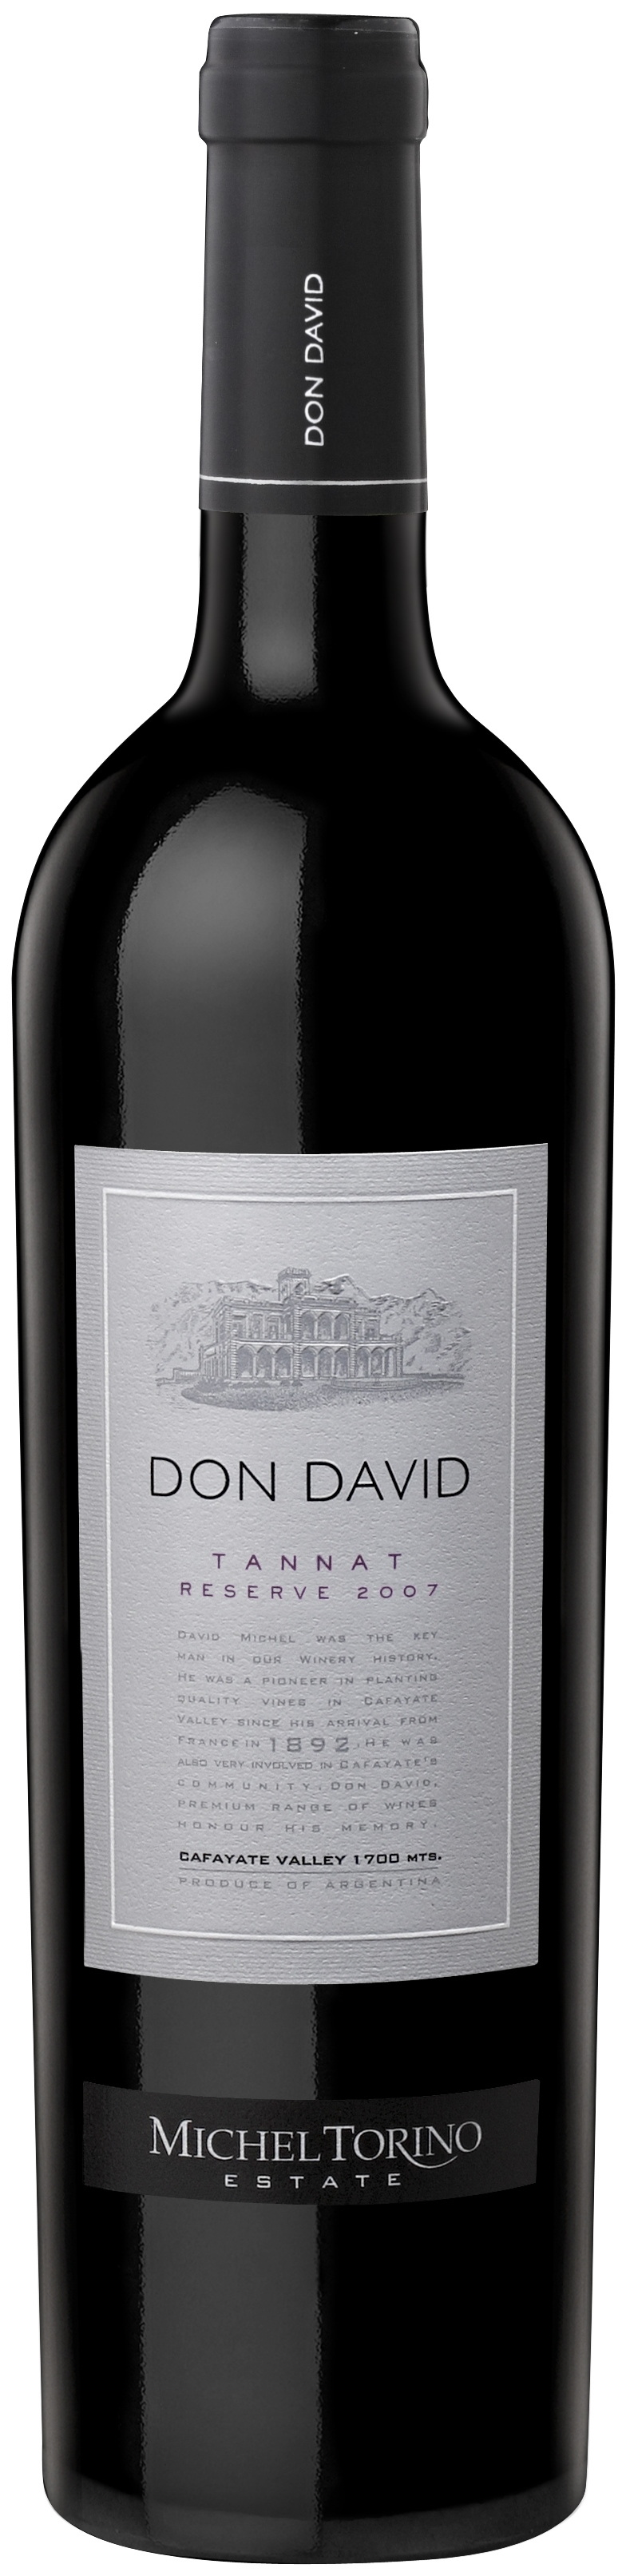 Michel Torino  Don David Reserve Tannat 2014